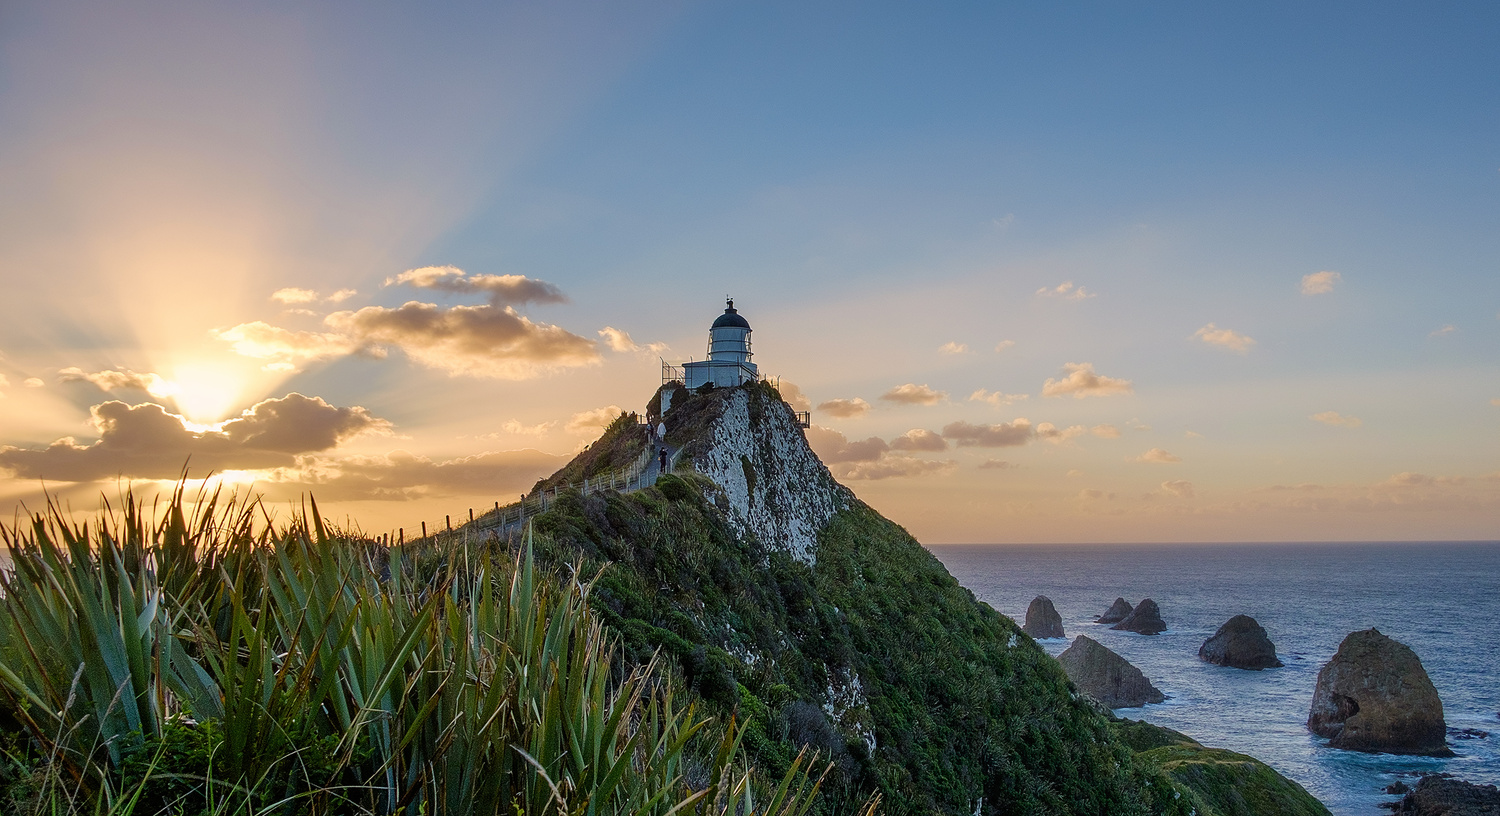 Godrays at Nugget Point Lighthouse by Tobias Kiemle